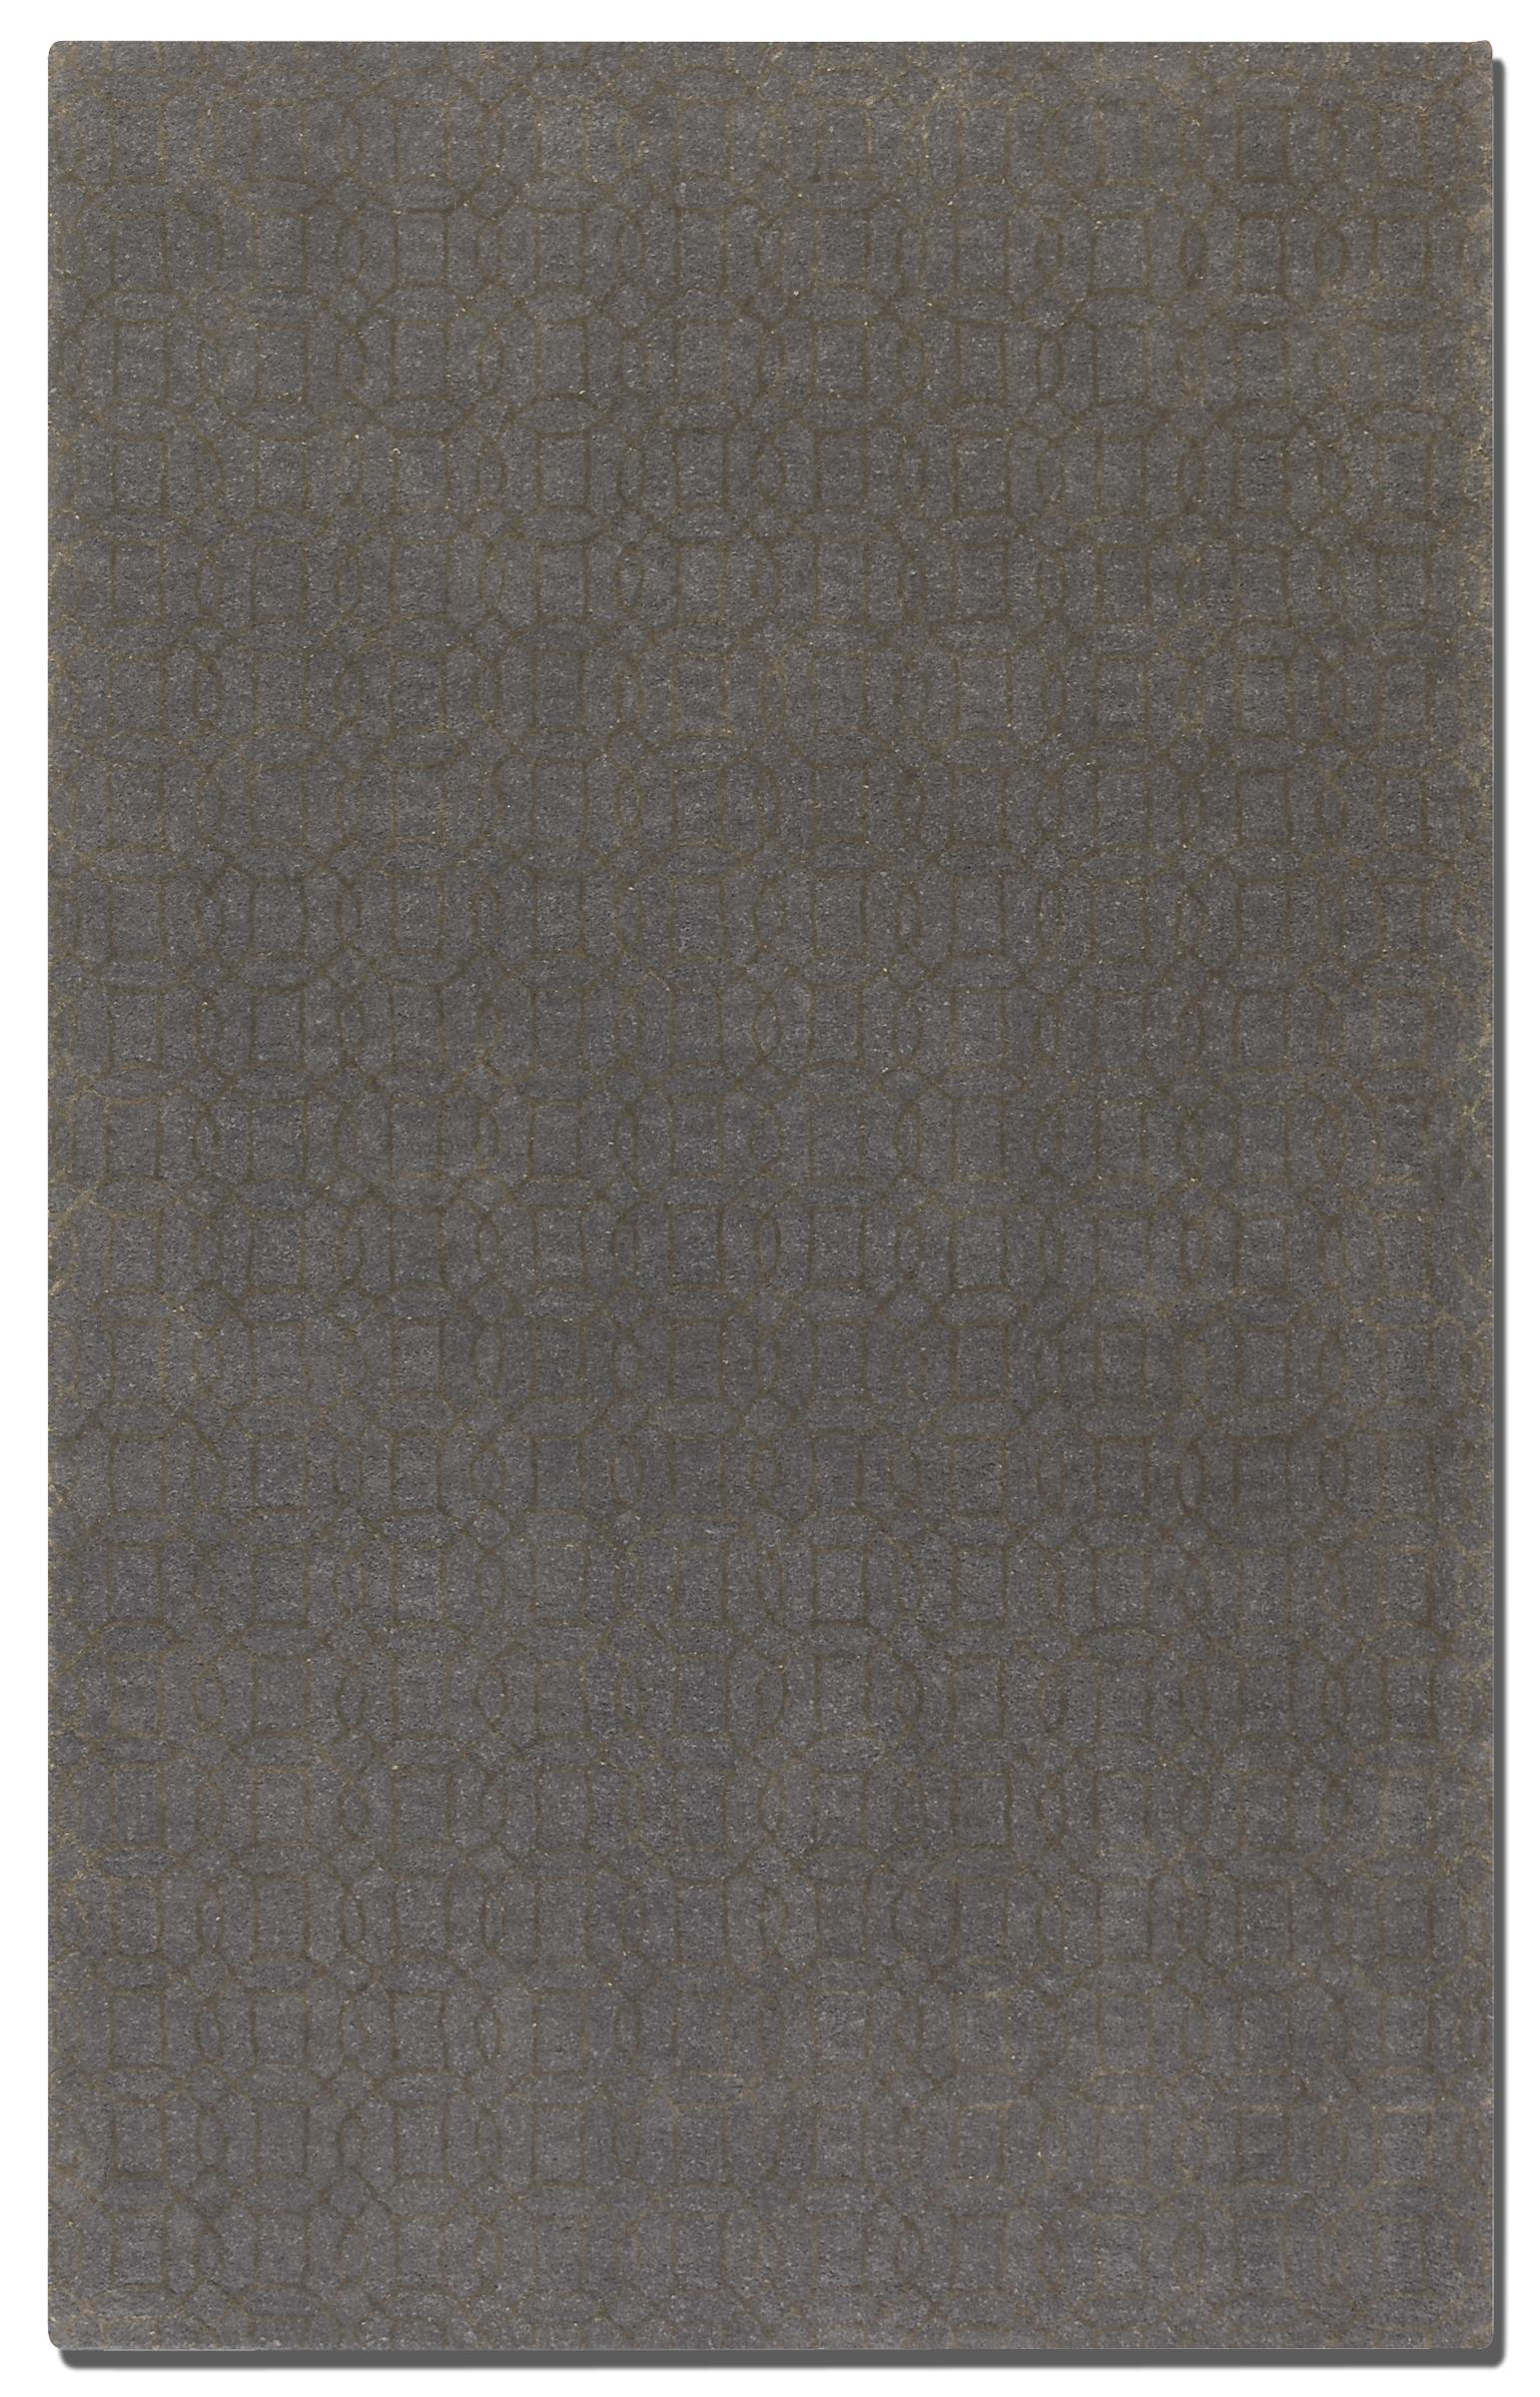 Uttermost Rugs Cambridge 9 X 12  - Item Number: 73028-9